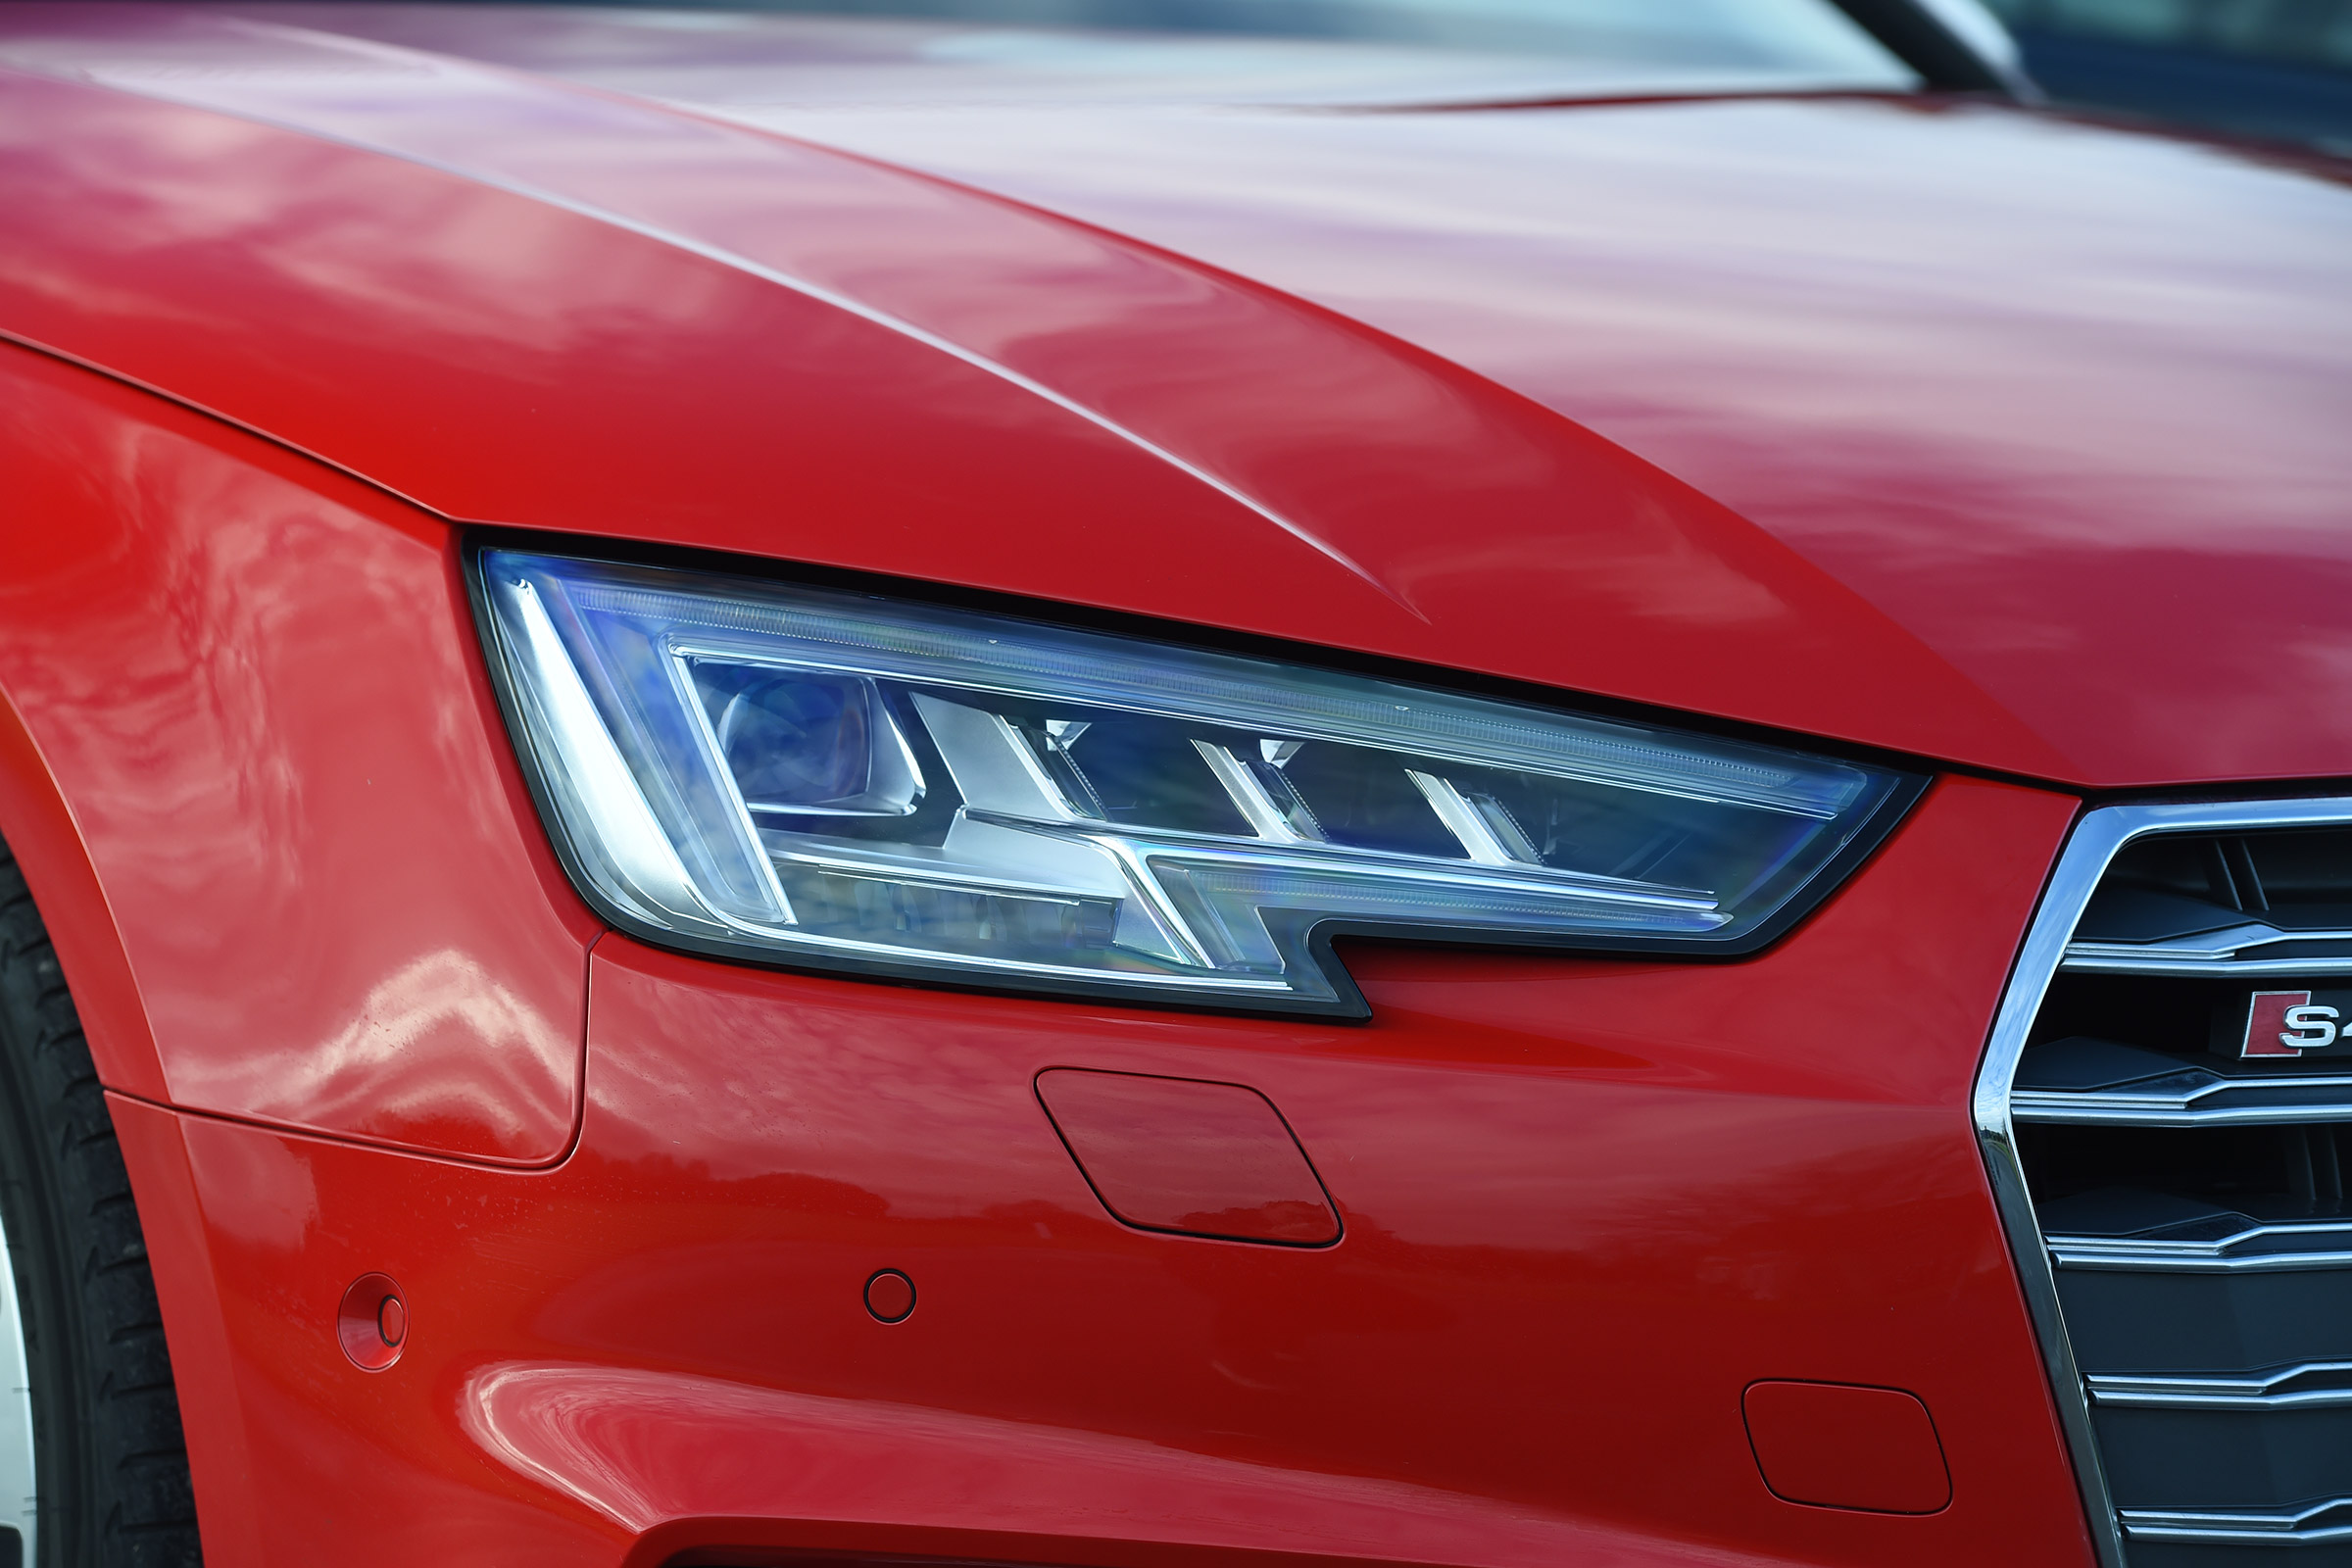 2017 Audi S4 Avant Exterior View Headlight (Photo 3 of 17)